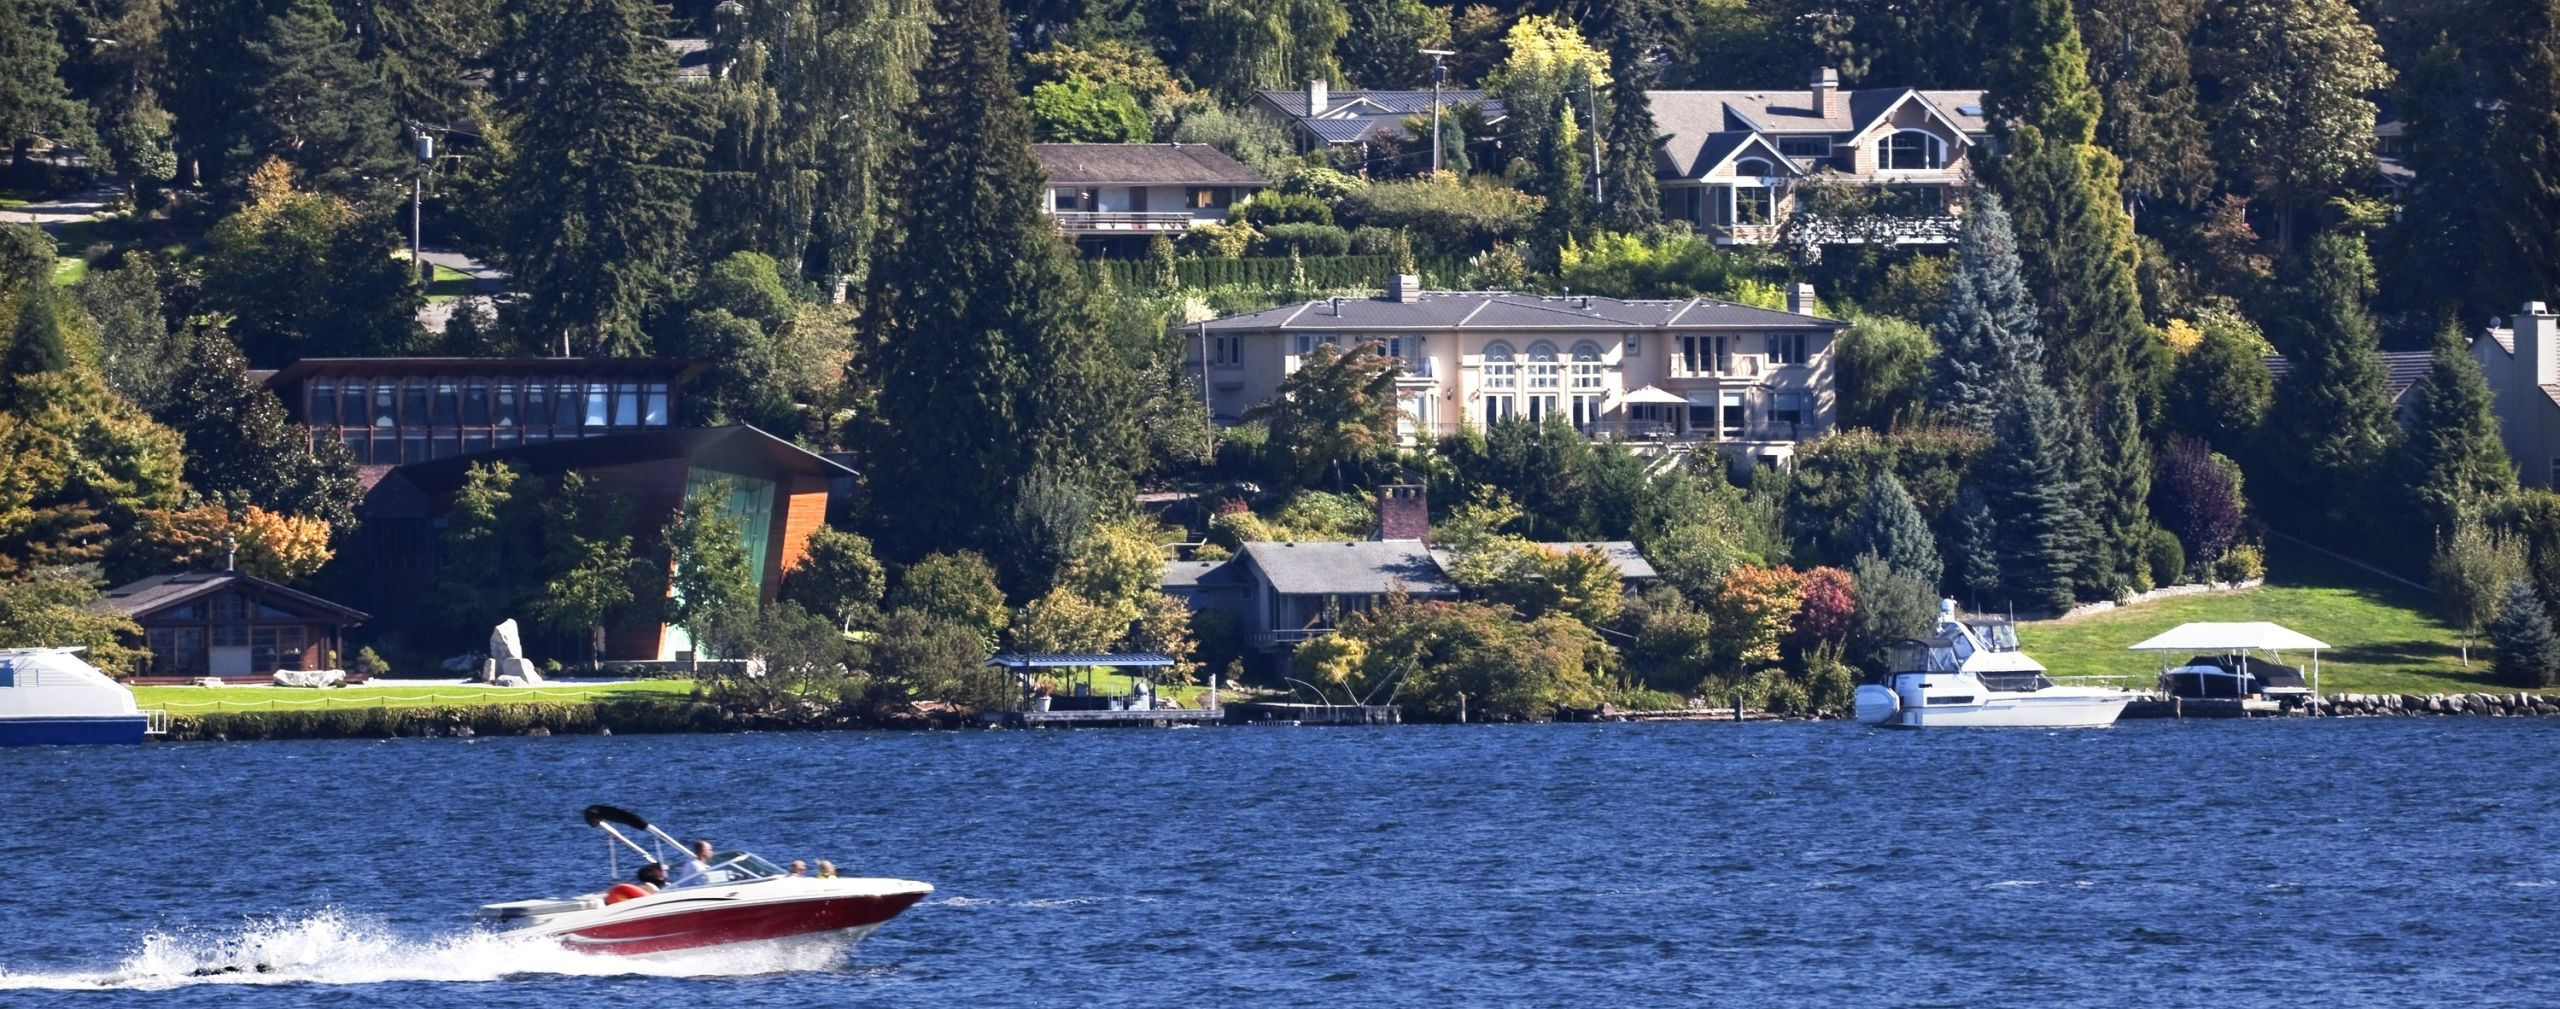 Create your own Mercer Island lifestyle!